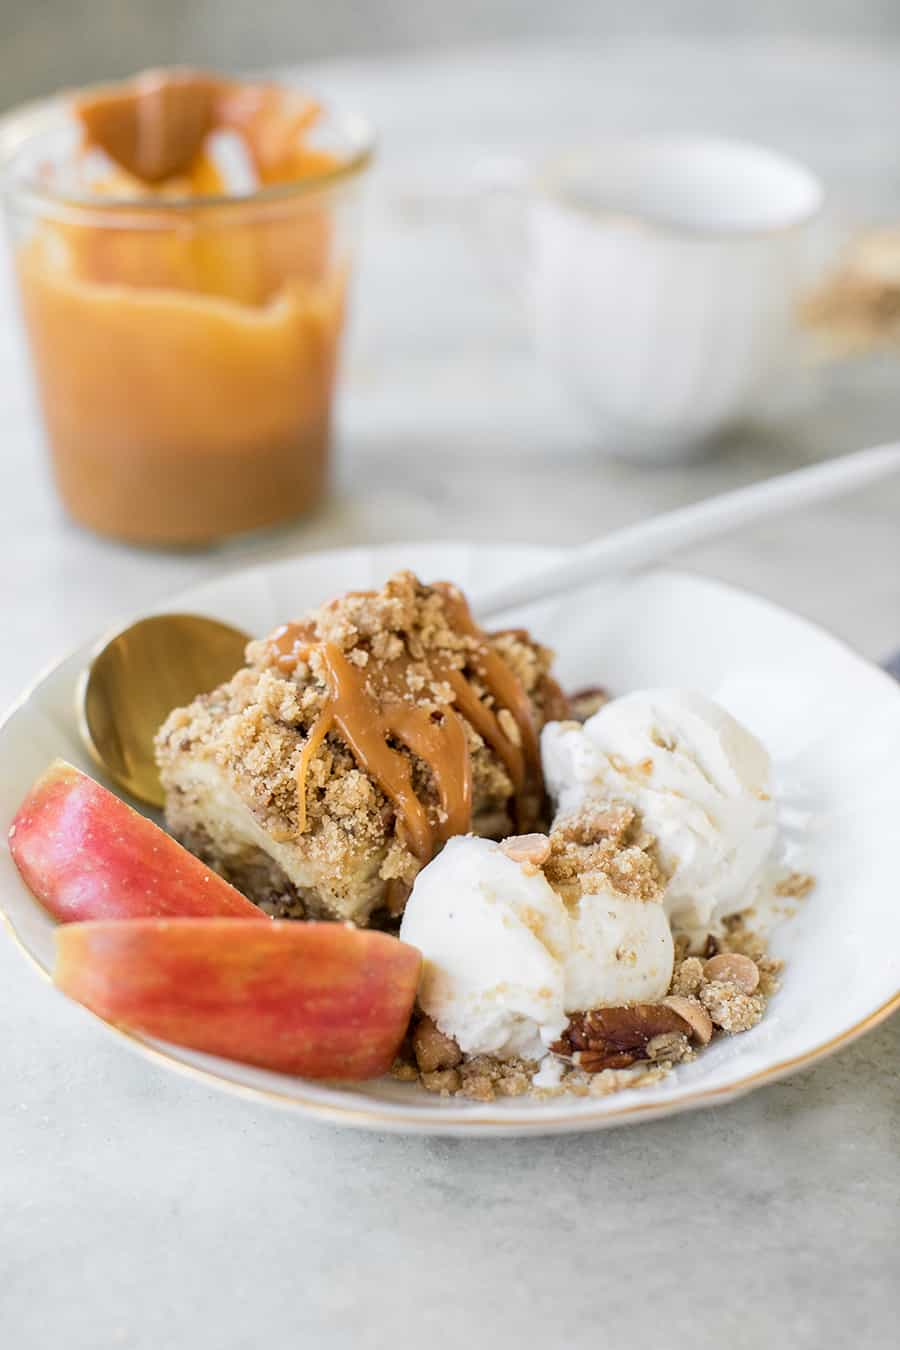 shot of apple crumble bar on a plate with apples and ice cream